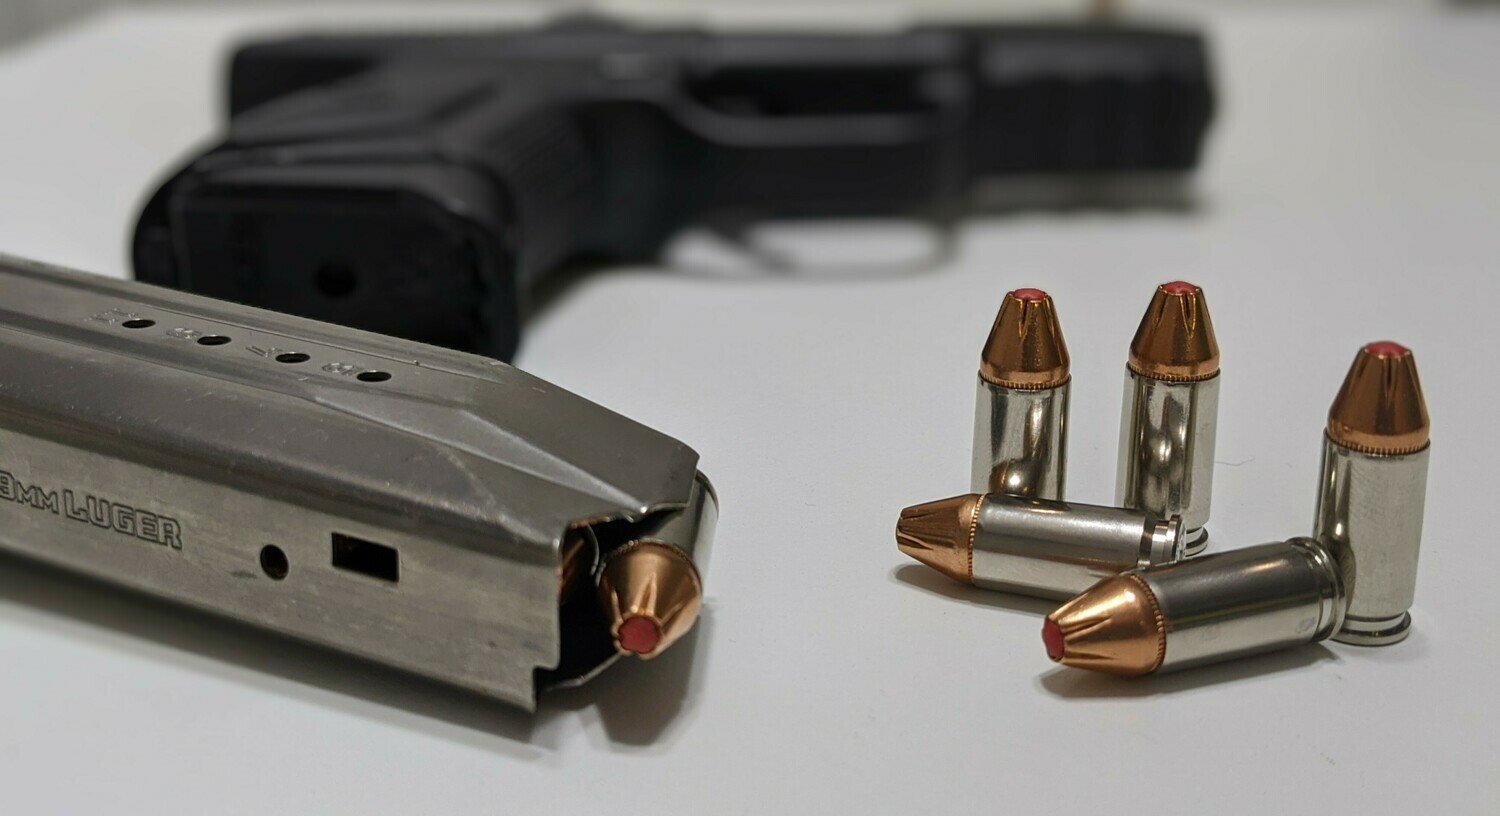 Concealed Carry Permit Class - Utah, Saturday Oct. 24th at 9:00 am.